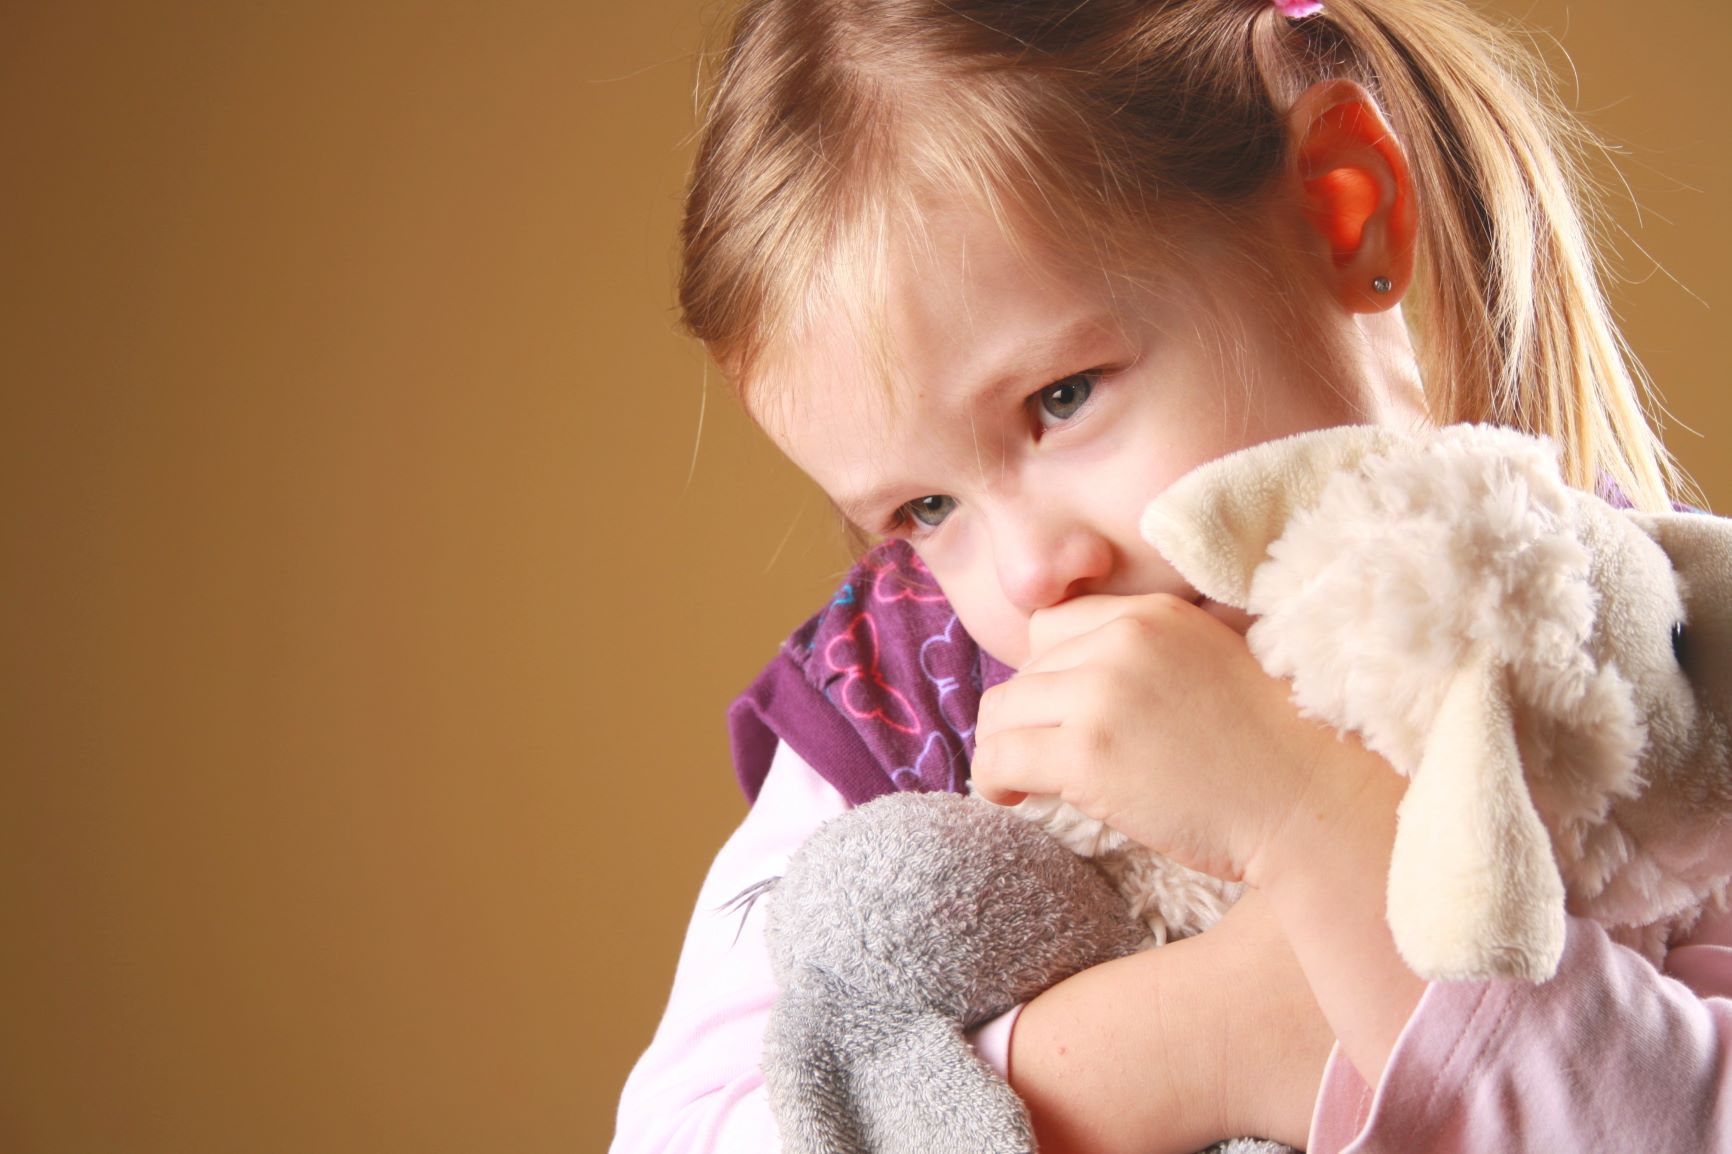 How To Deal With Separation Anxiety At Preschool